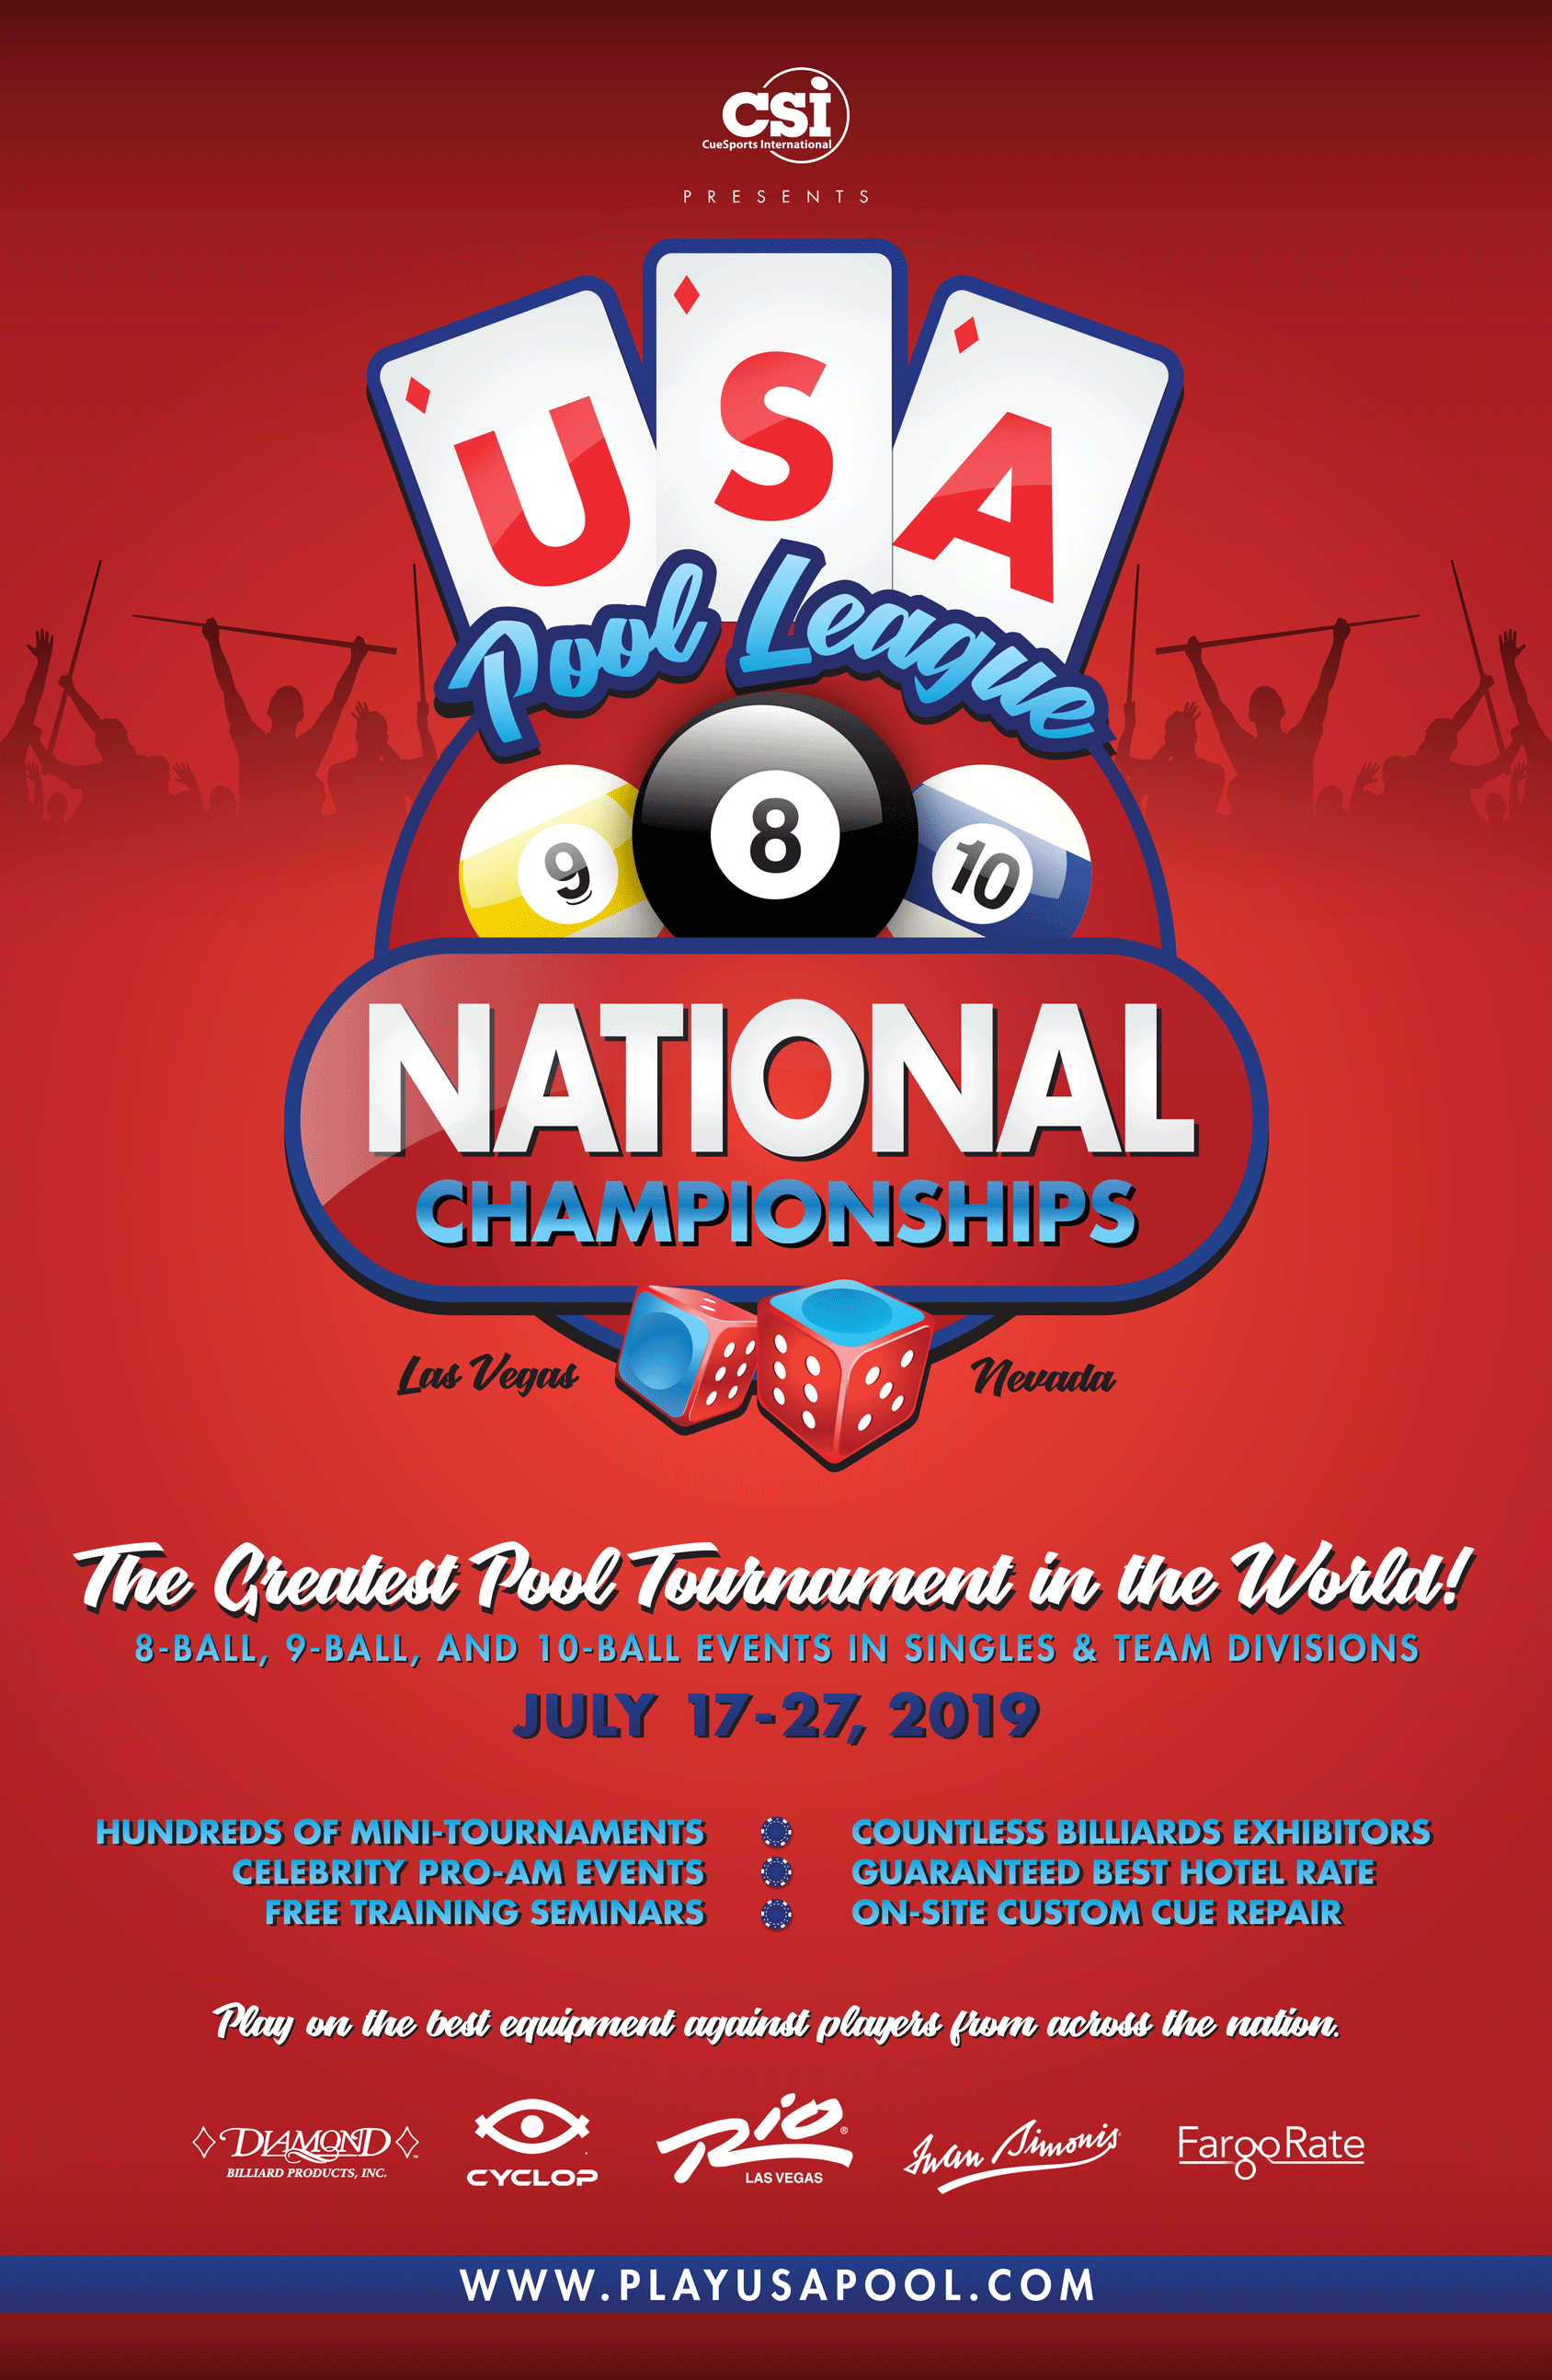 2019 USAPL National Championships - CueSports International (CSI)